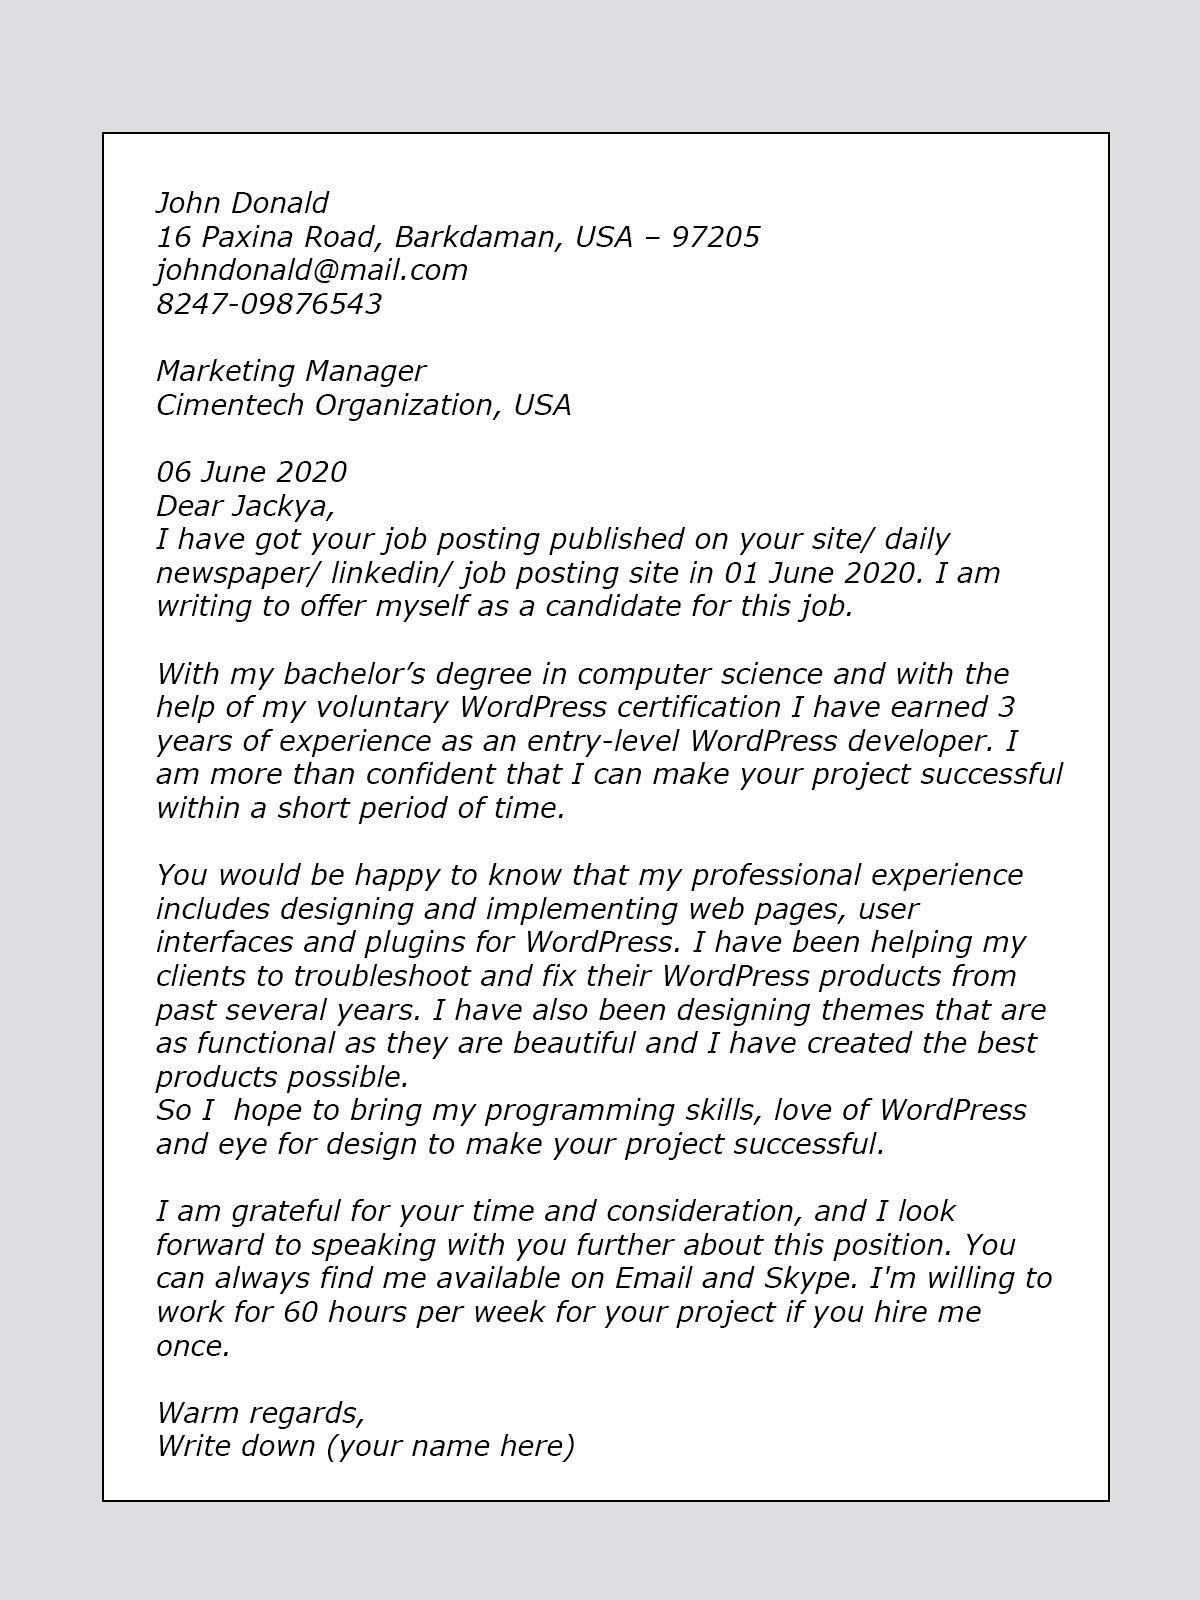 Beautiful Cover Letter Sample For WordPress Developer